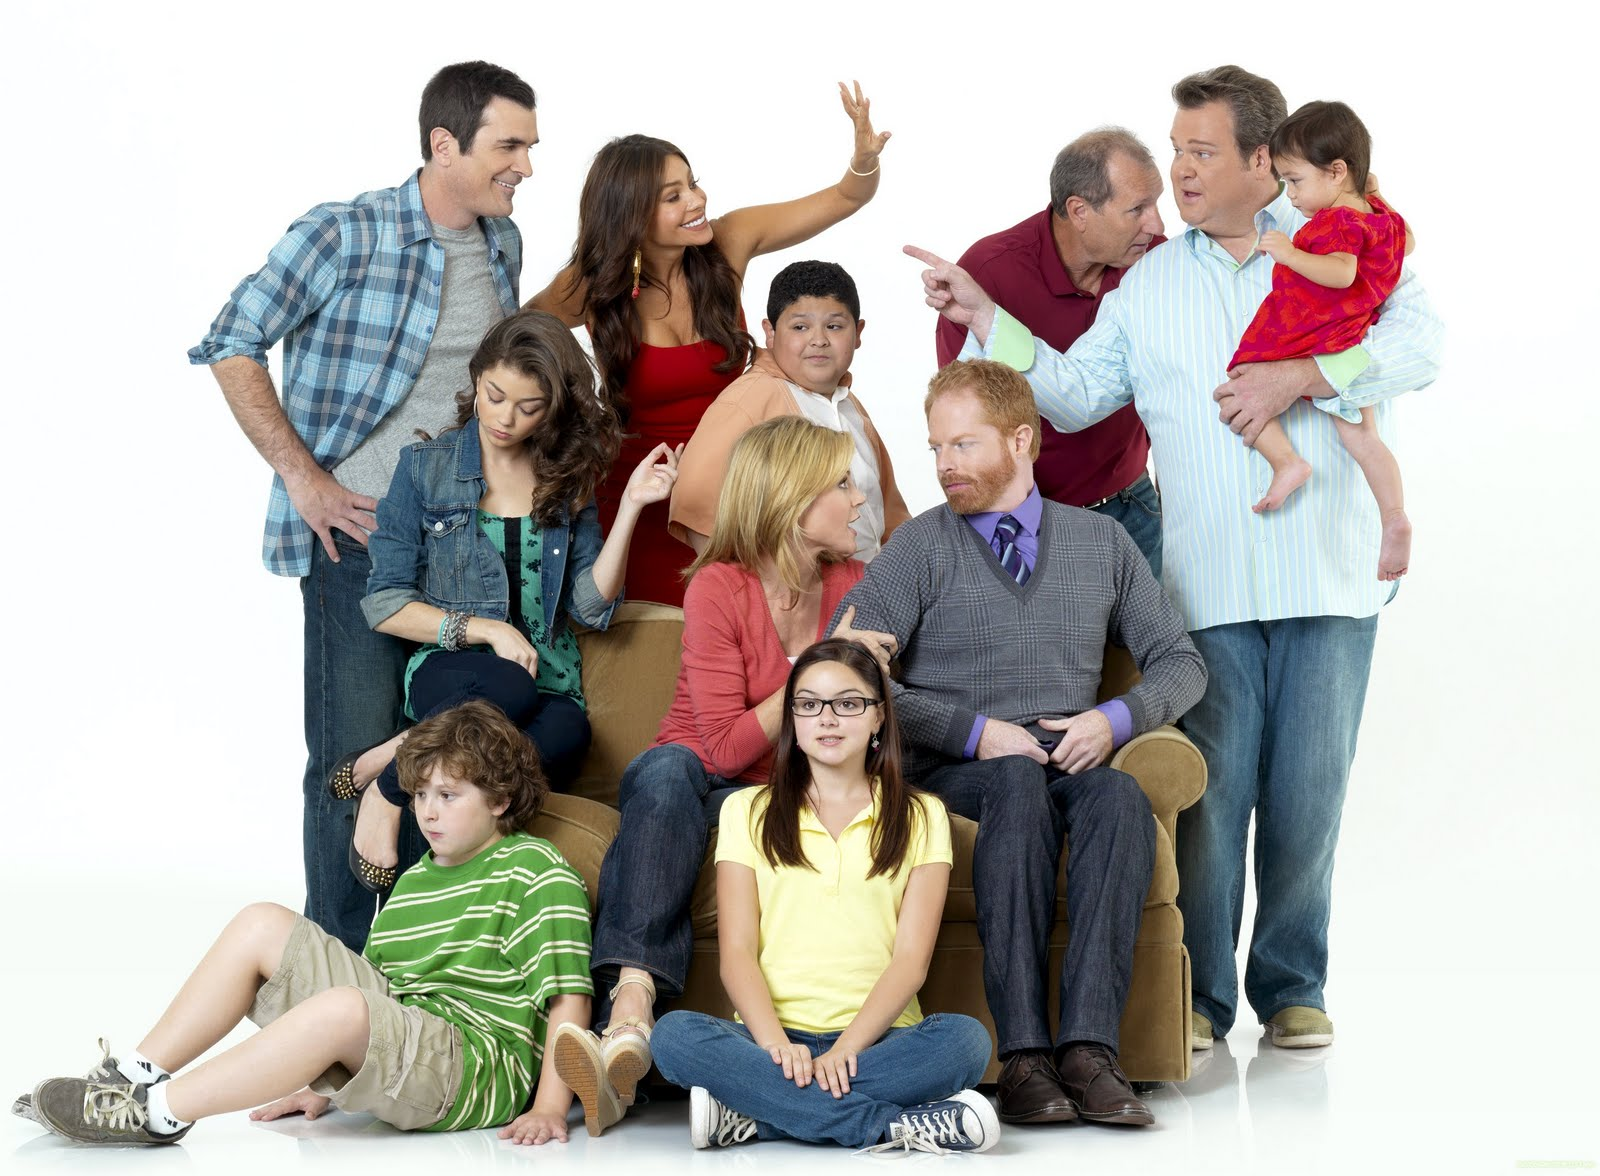 modern family images wallpaper - photo #18